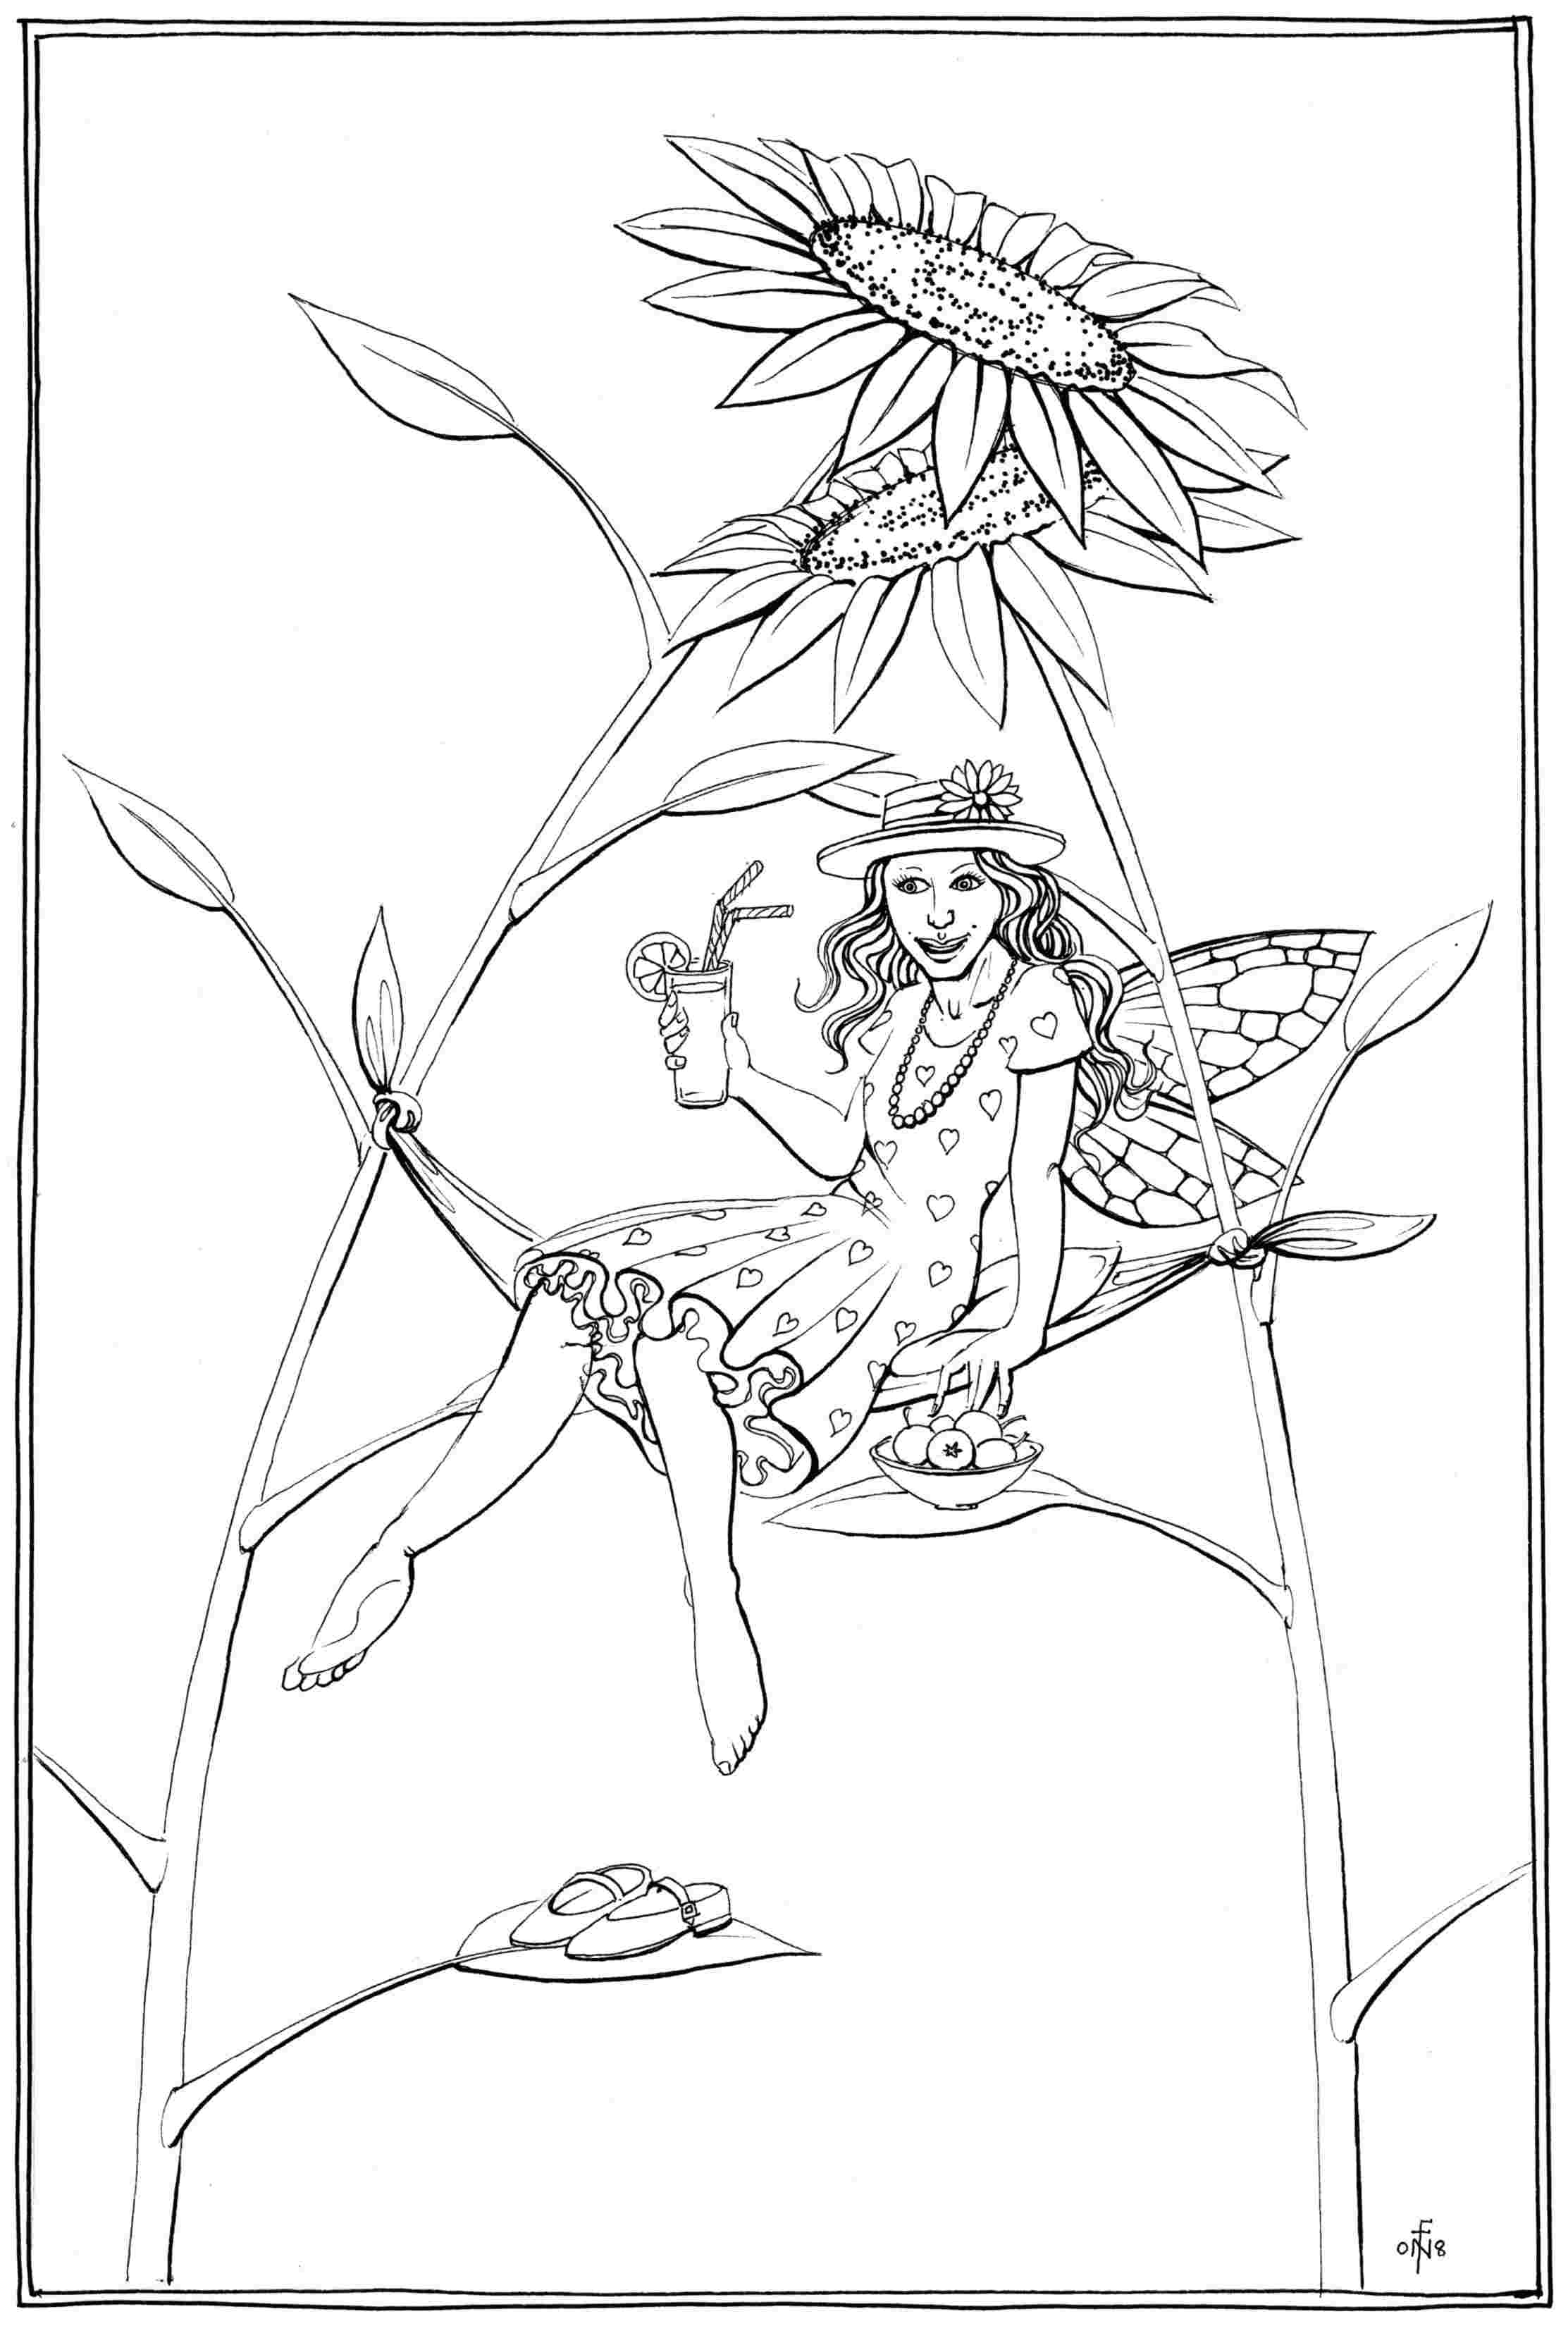 Sunflower Bower - colouring-in drawing - to download, right click and save, print out and colour in!